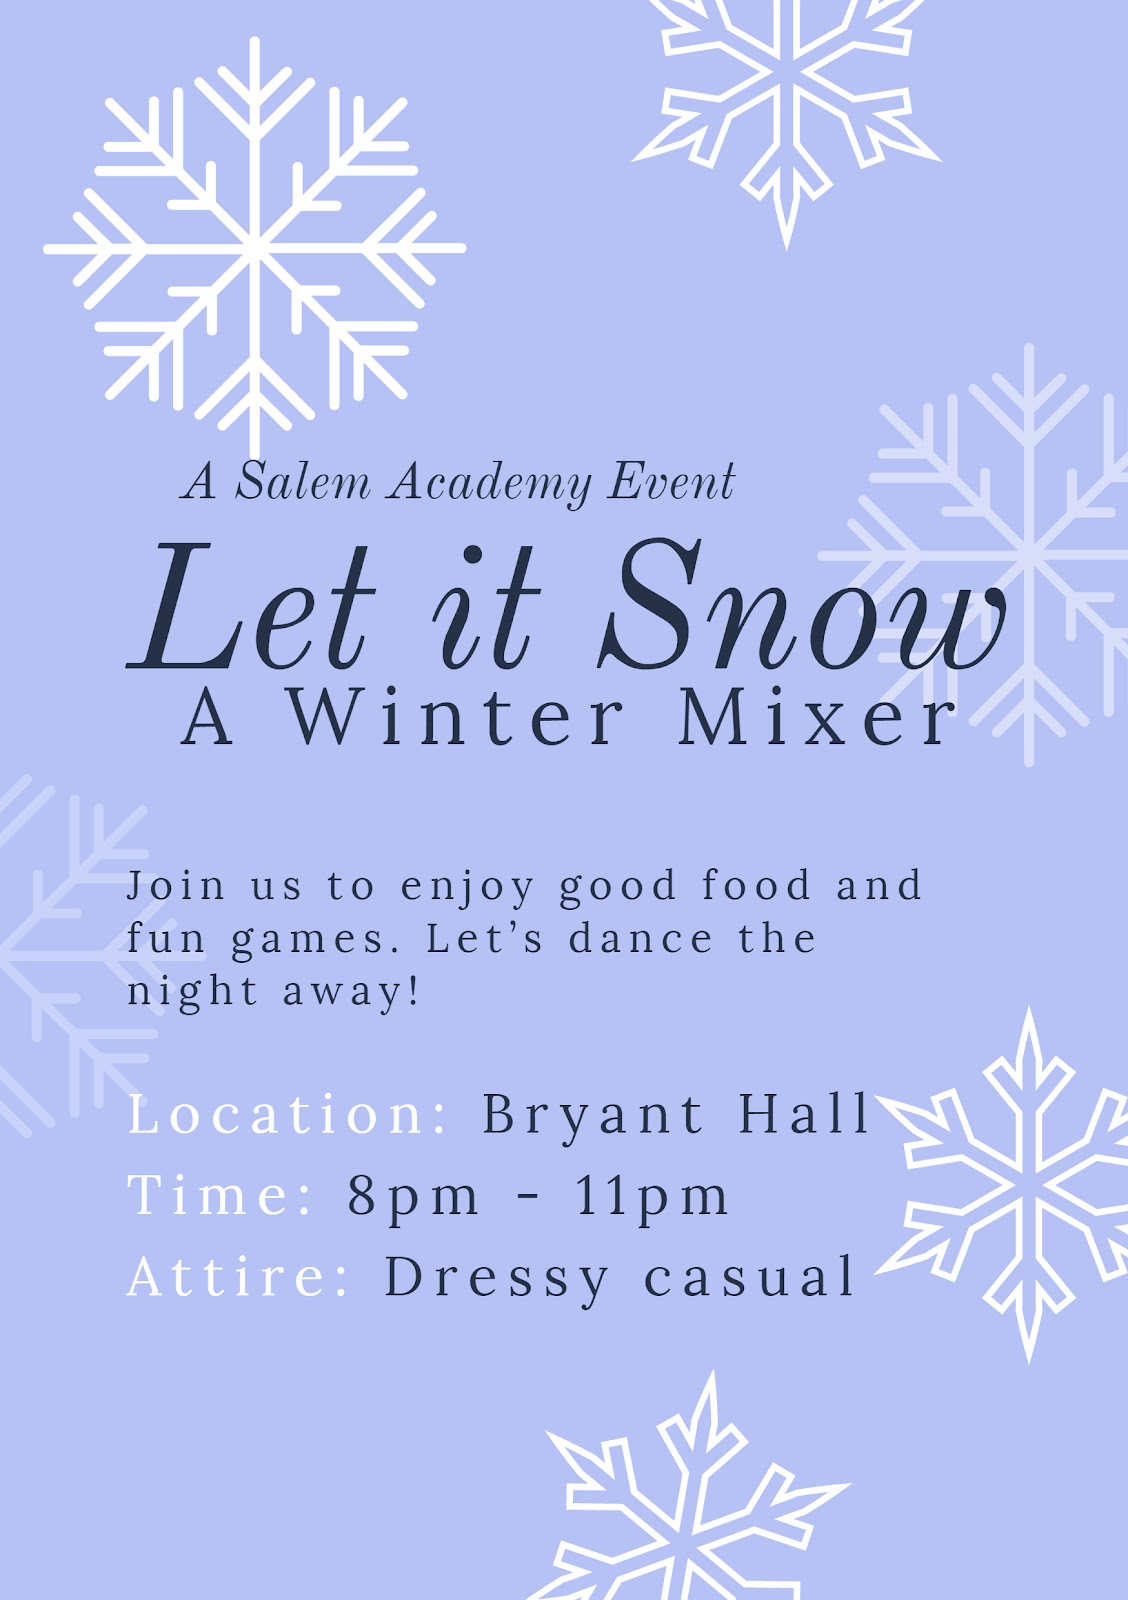 Winter Mixer Flyer